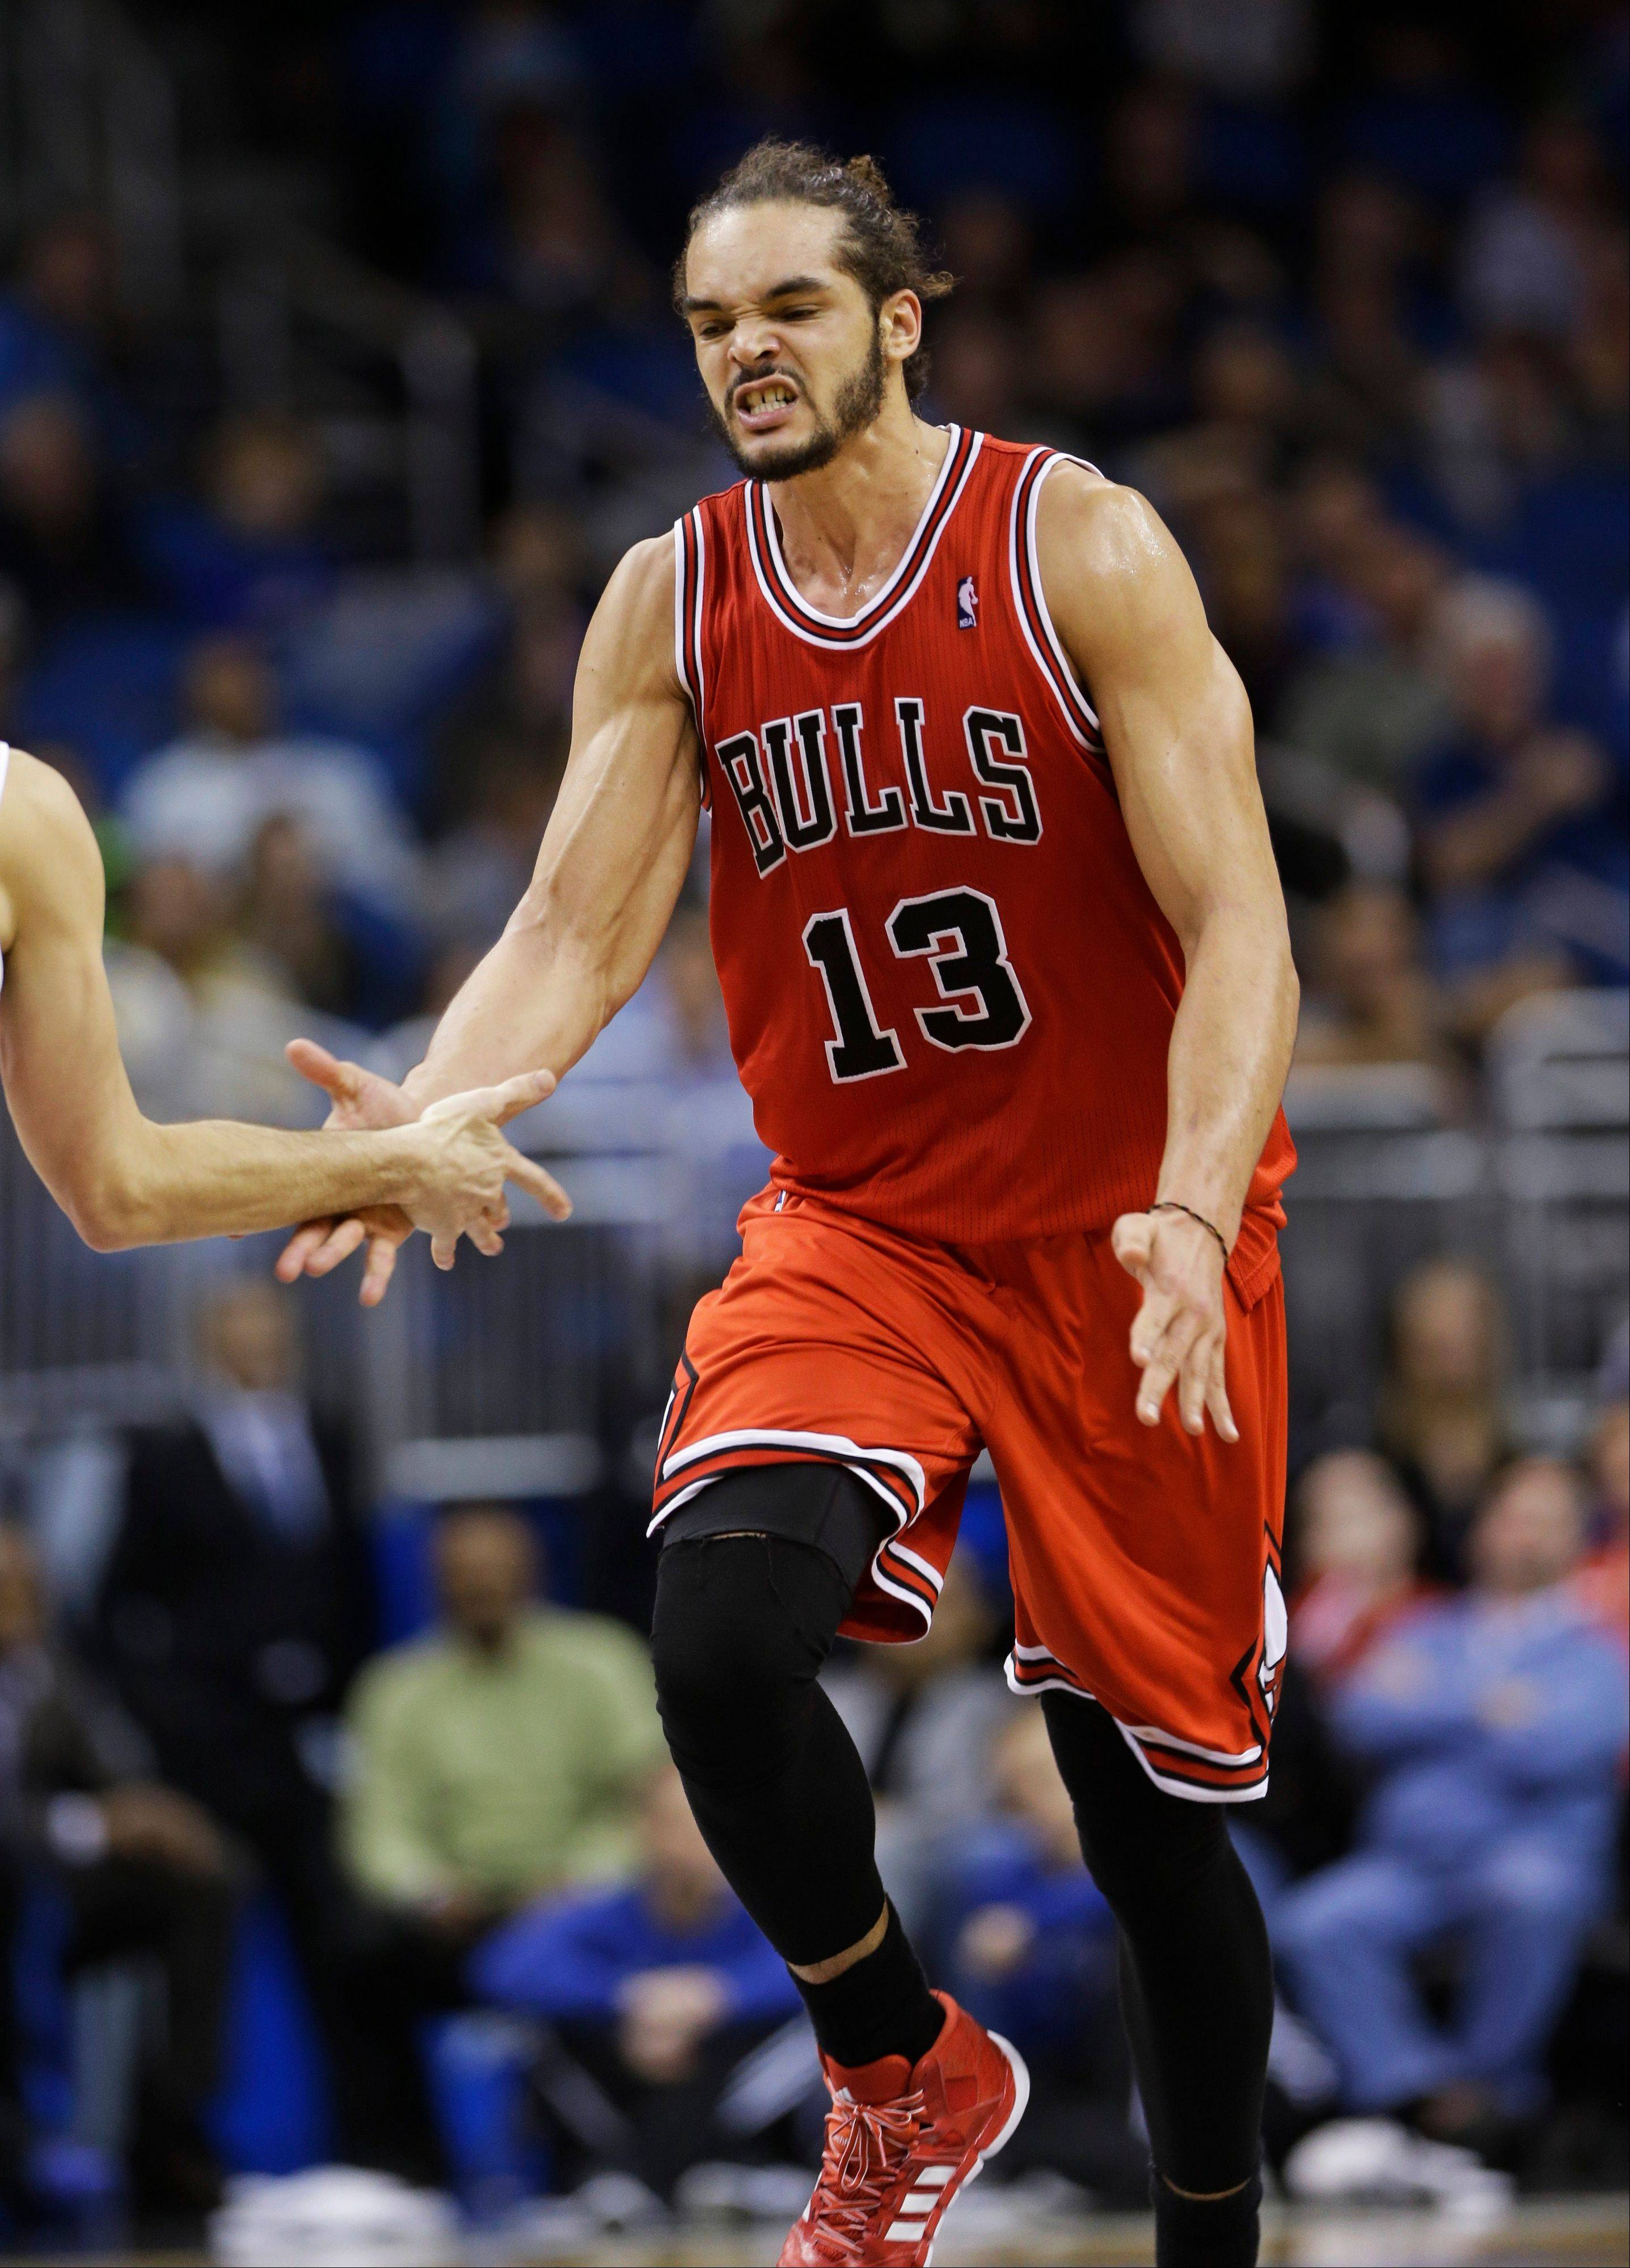 Chicago Bulls' Joakim Noah (13) slaps hands with teammate Kirk Hinrich after sinking a shot during the second half of an NBA basketball game against the Orlando Magic in Orlando, Fla., Wednesday, Jan. 15, 2014. Chicago won in triple overtime, 128-125.